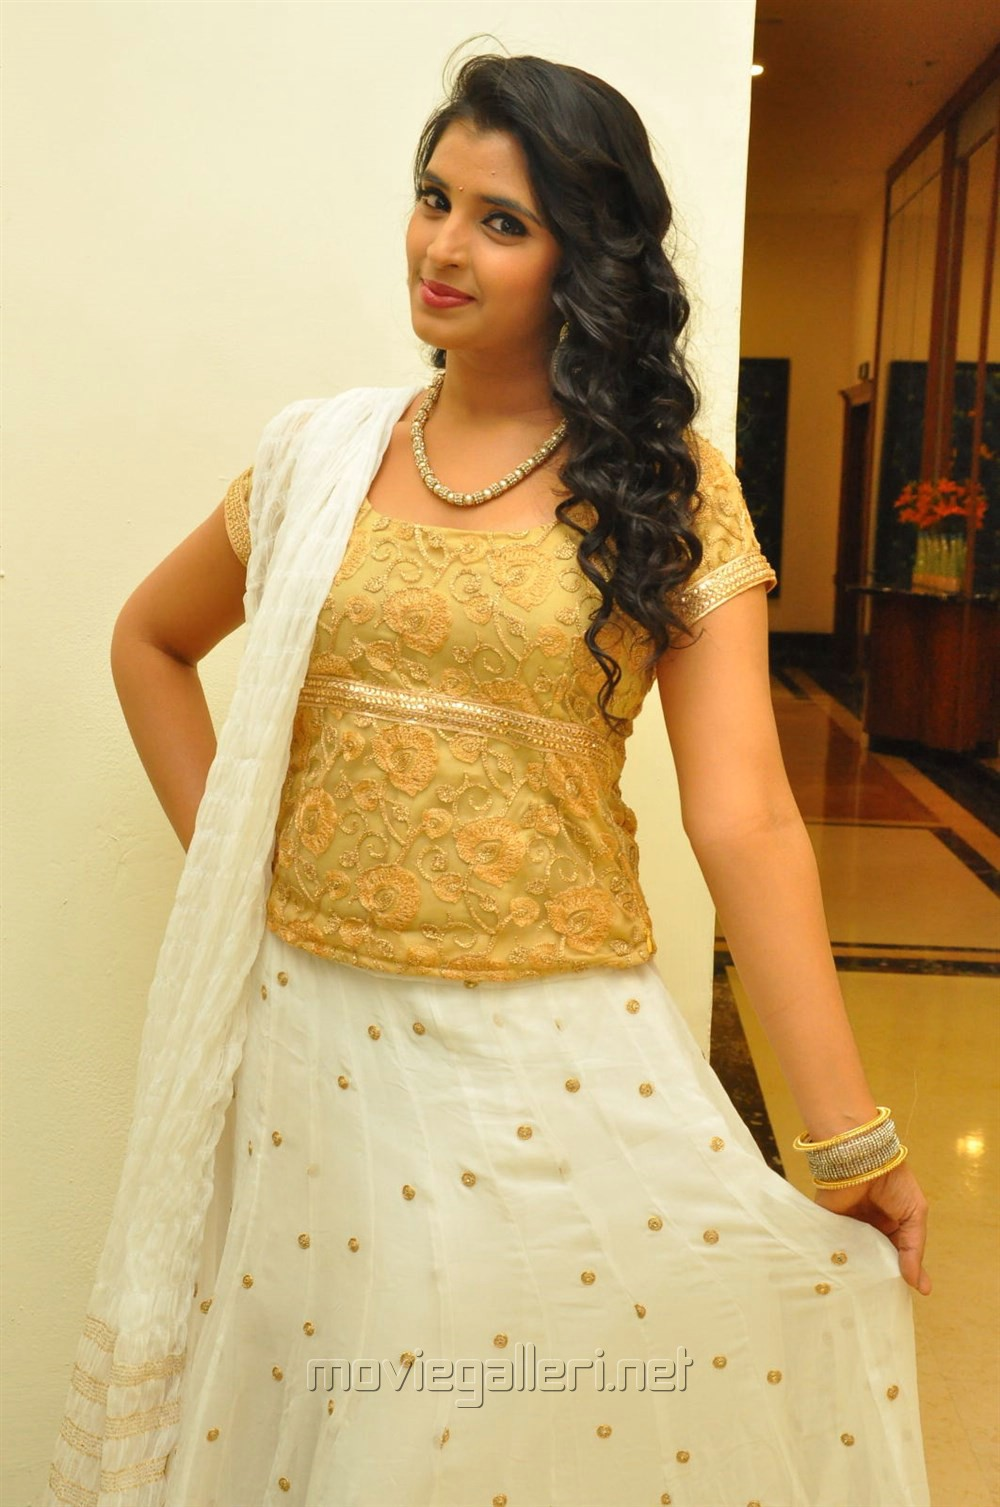 Anchor Syamala Photos in Pavadai Sattai Dress